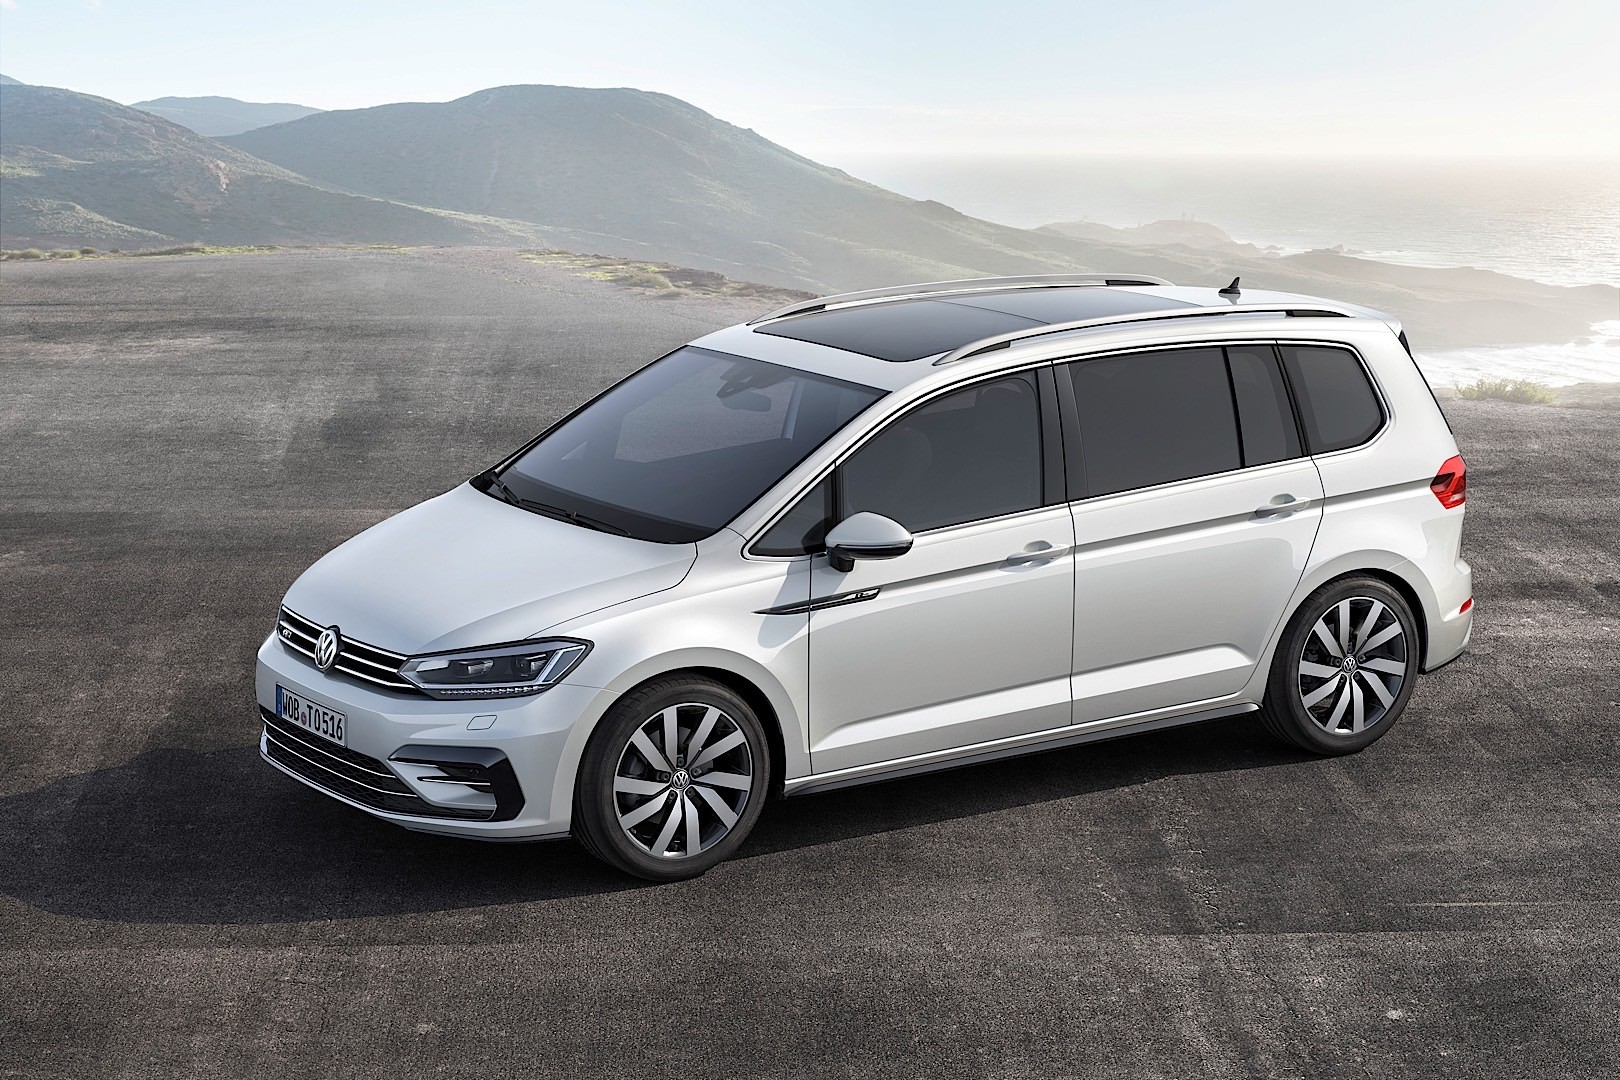 Vw Touran 2018 >> VOLKSWAGEN Touran - 2015, 2016 - autoevolution